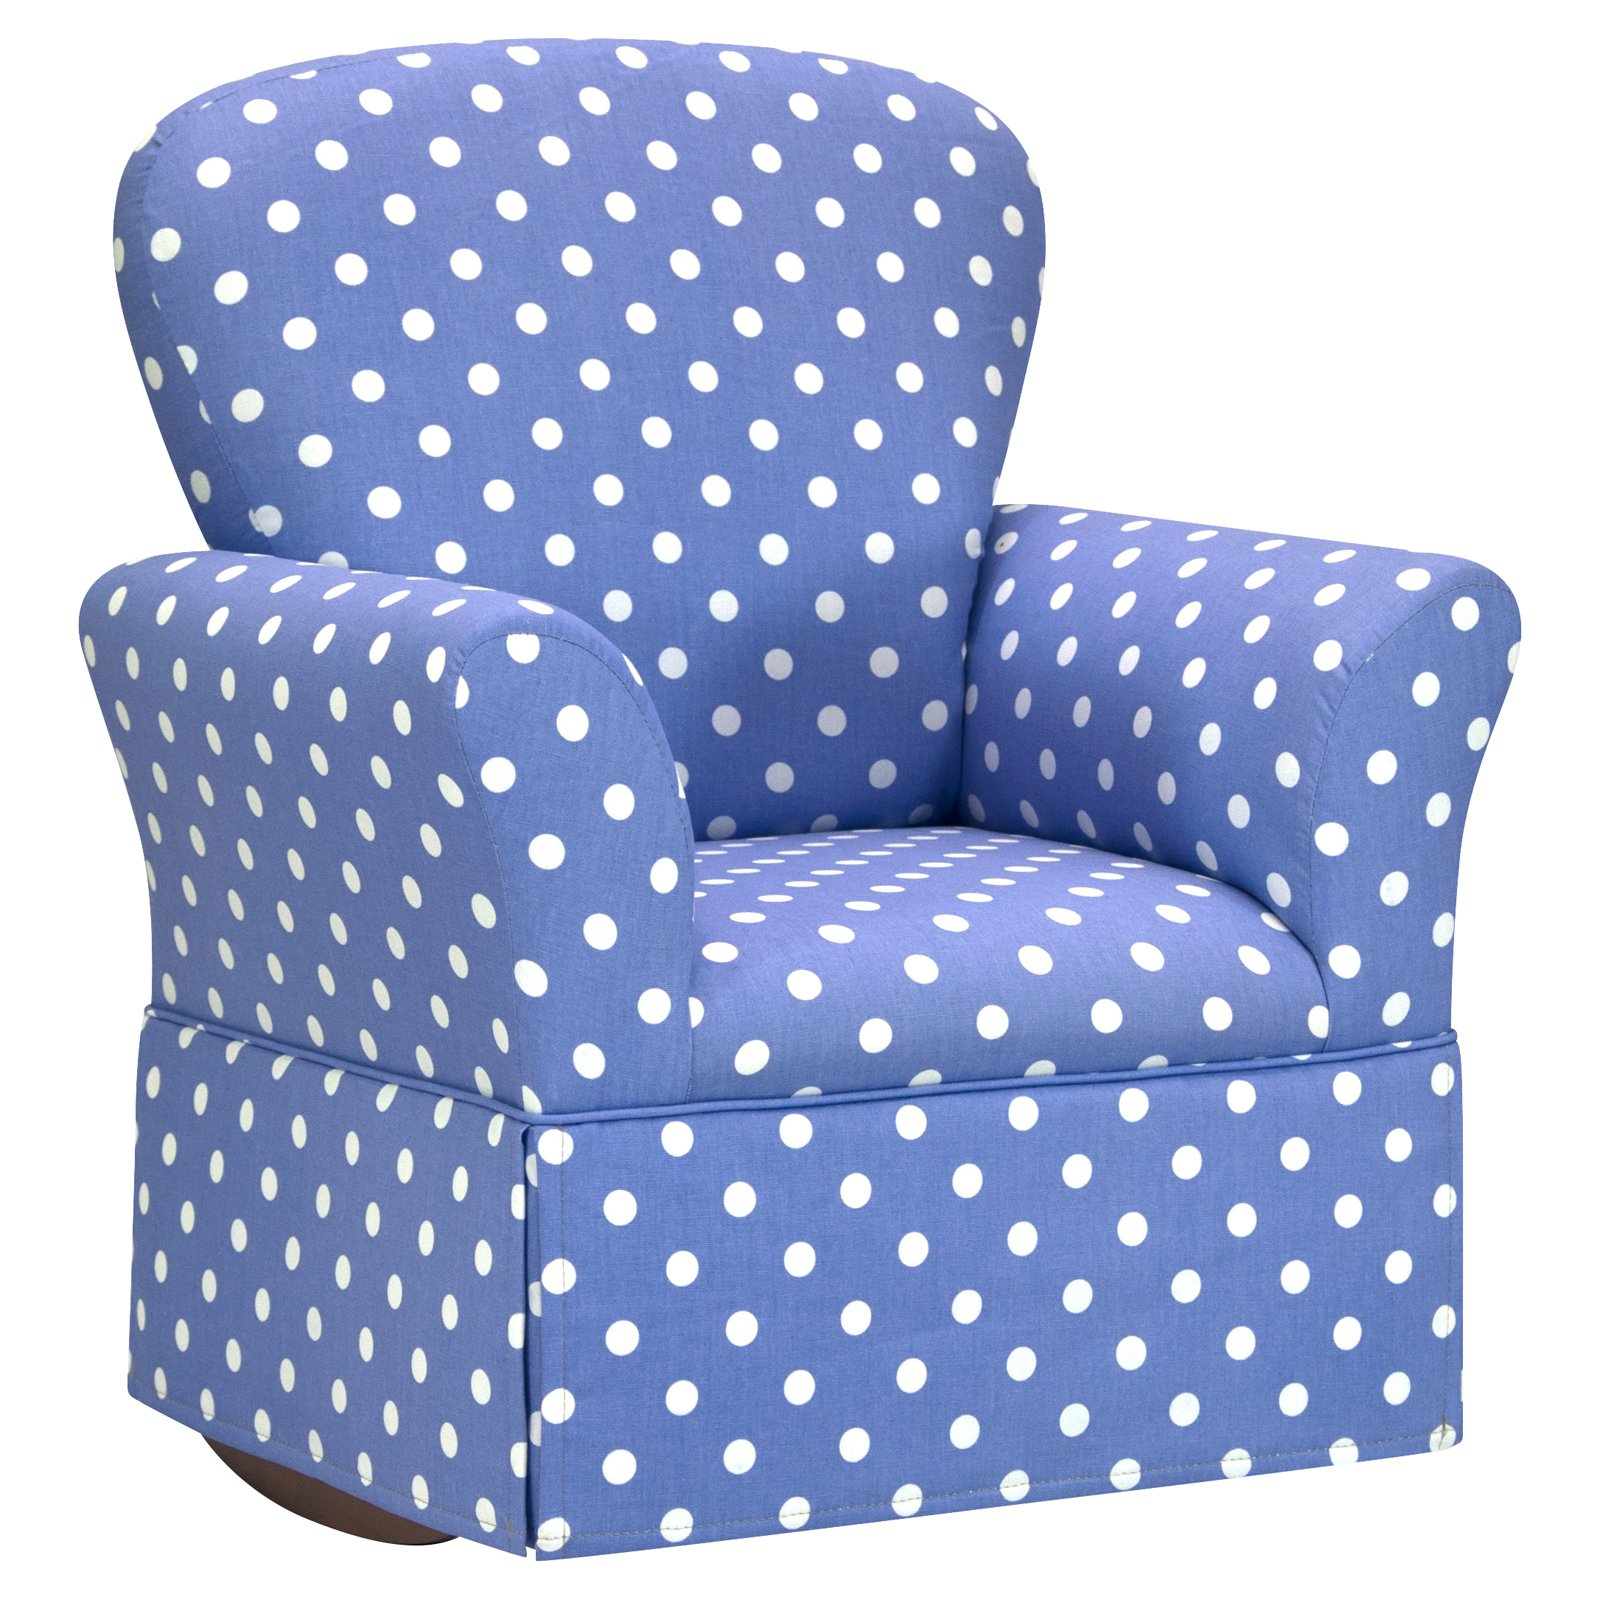 Kidz World Polka Dots - Lilac with White Skirted Rocker